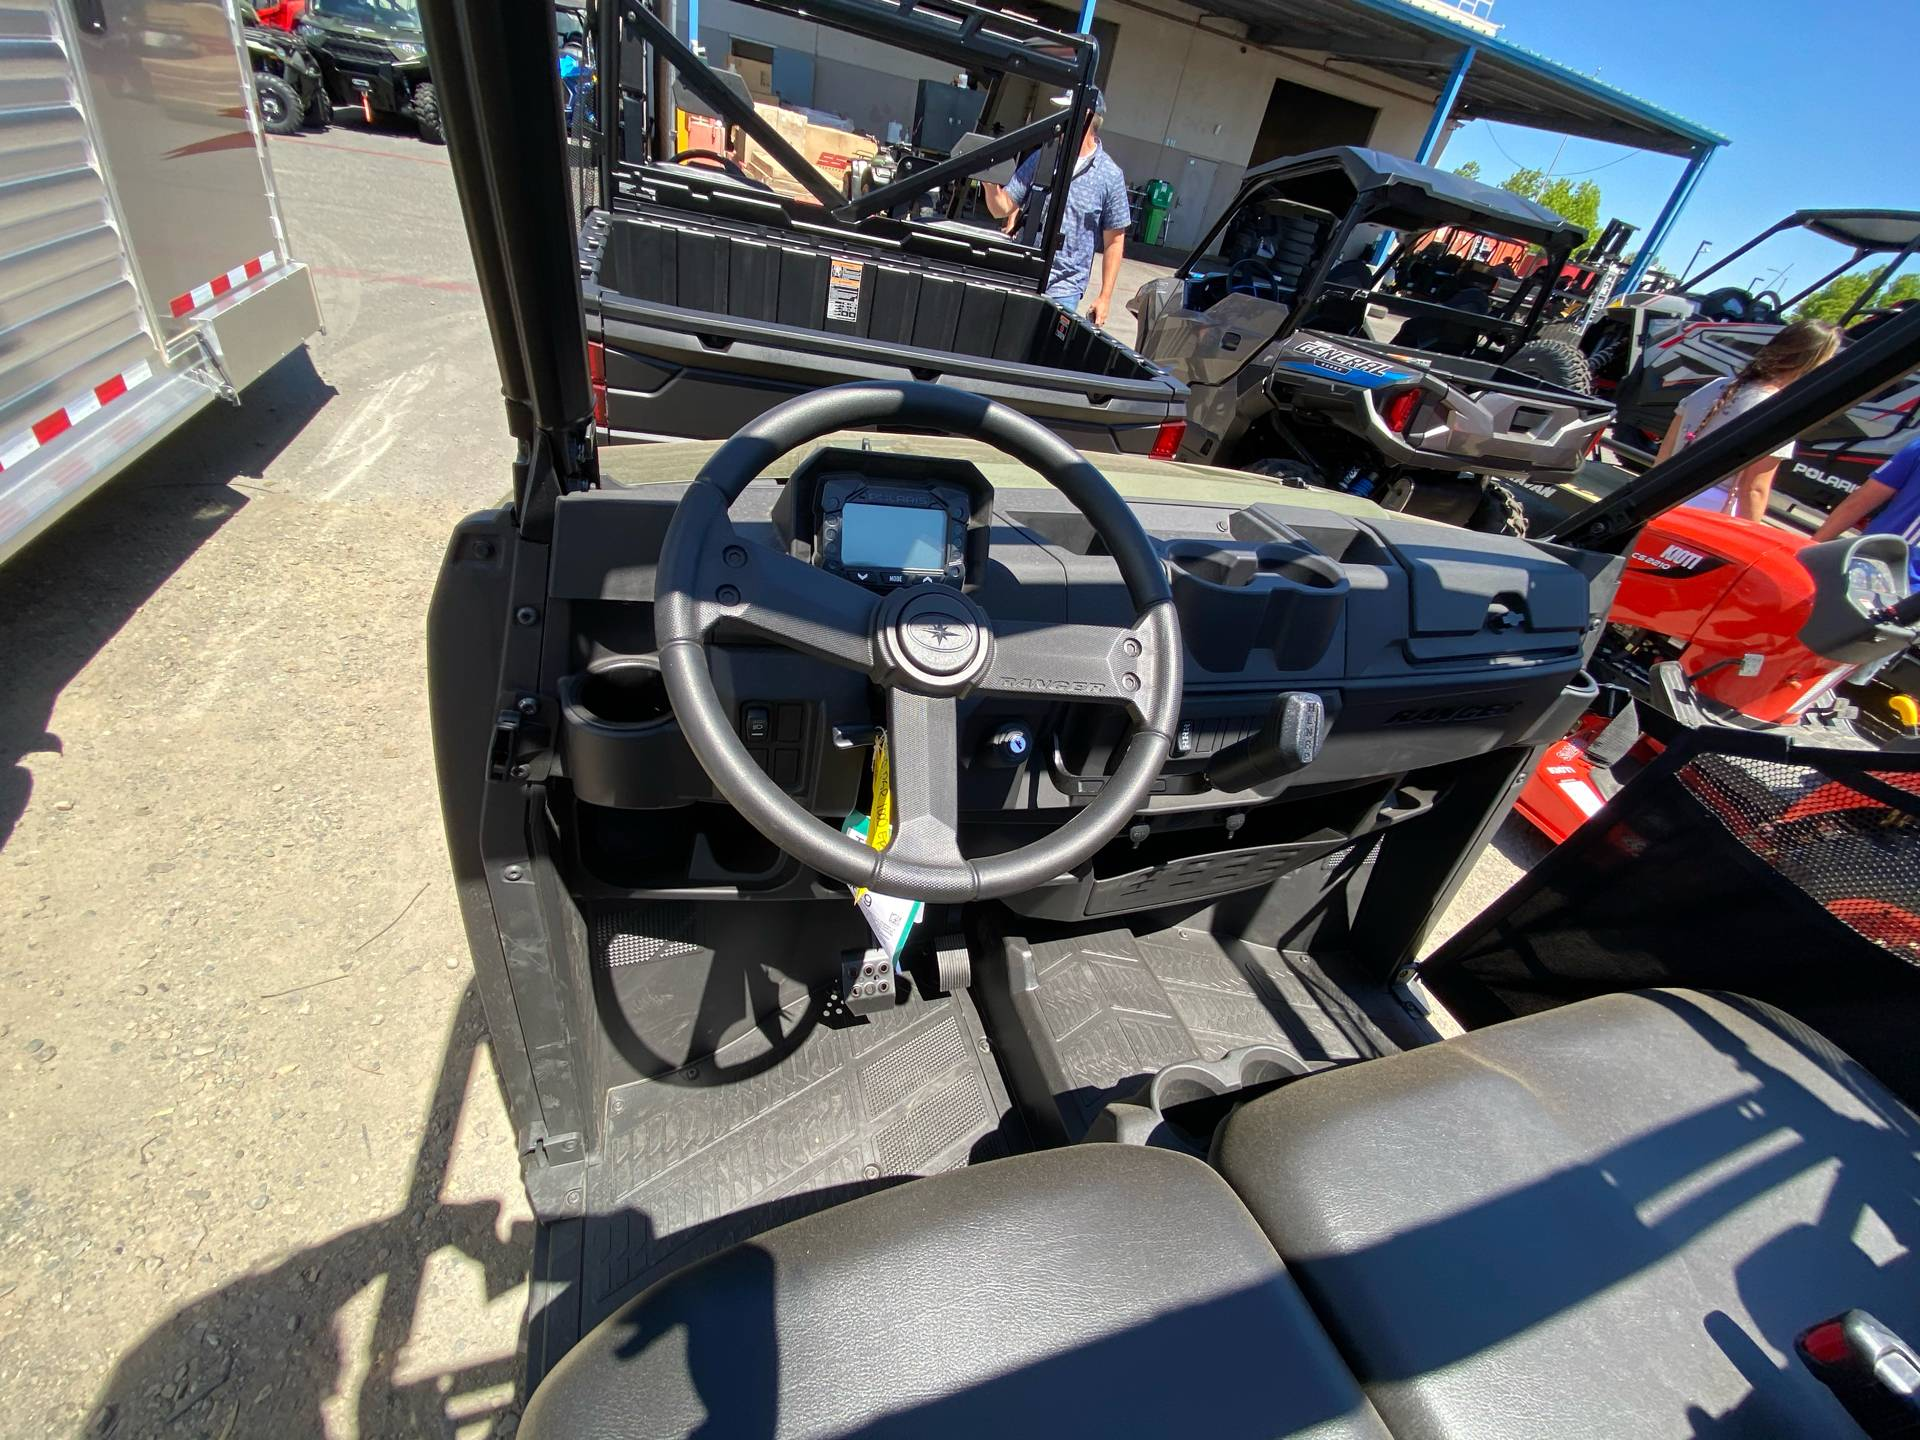 2021 Polaris Ranger 1000 EPS in Elk Grove, California - Photo 8